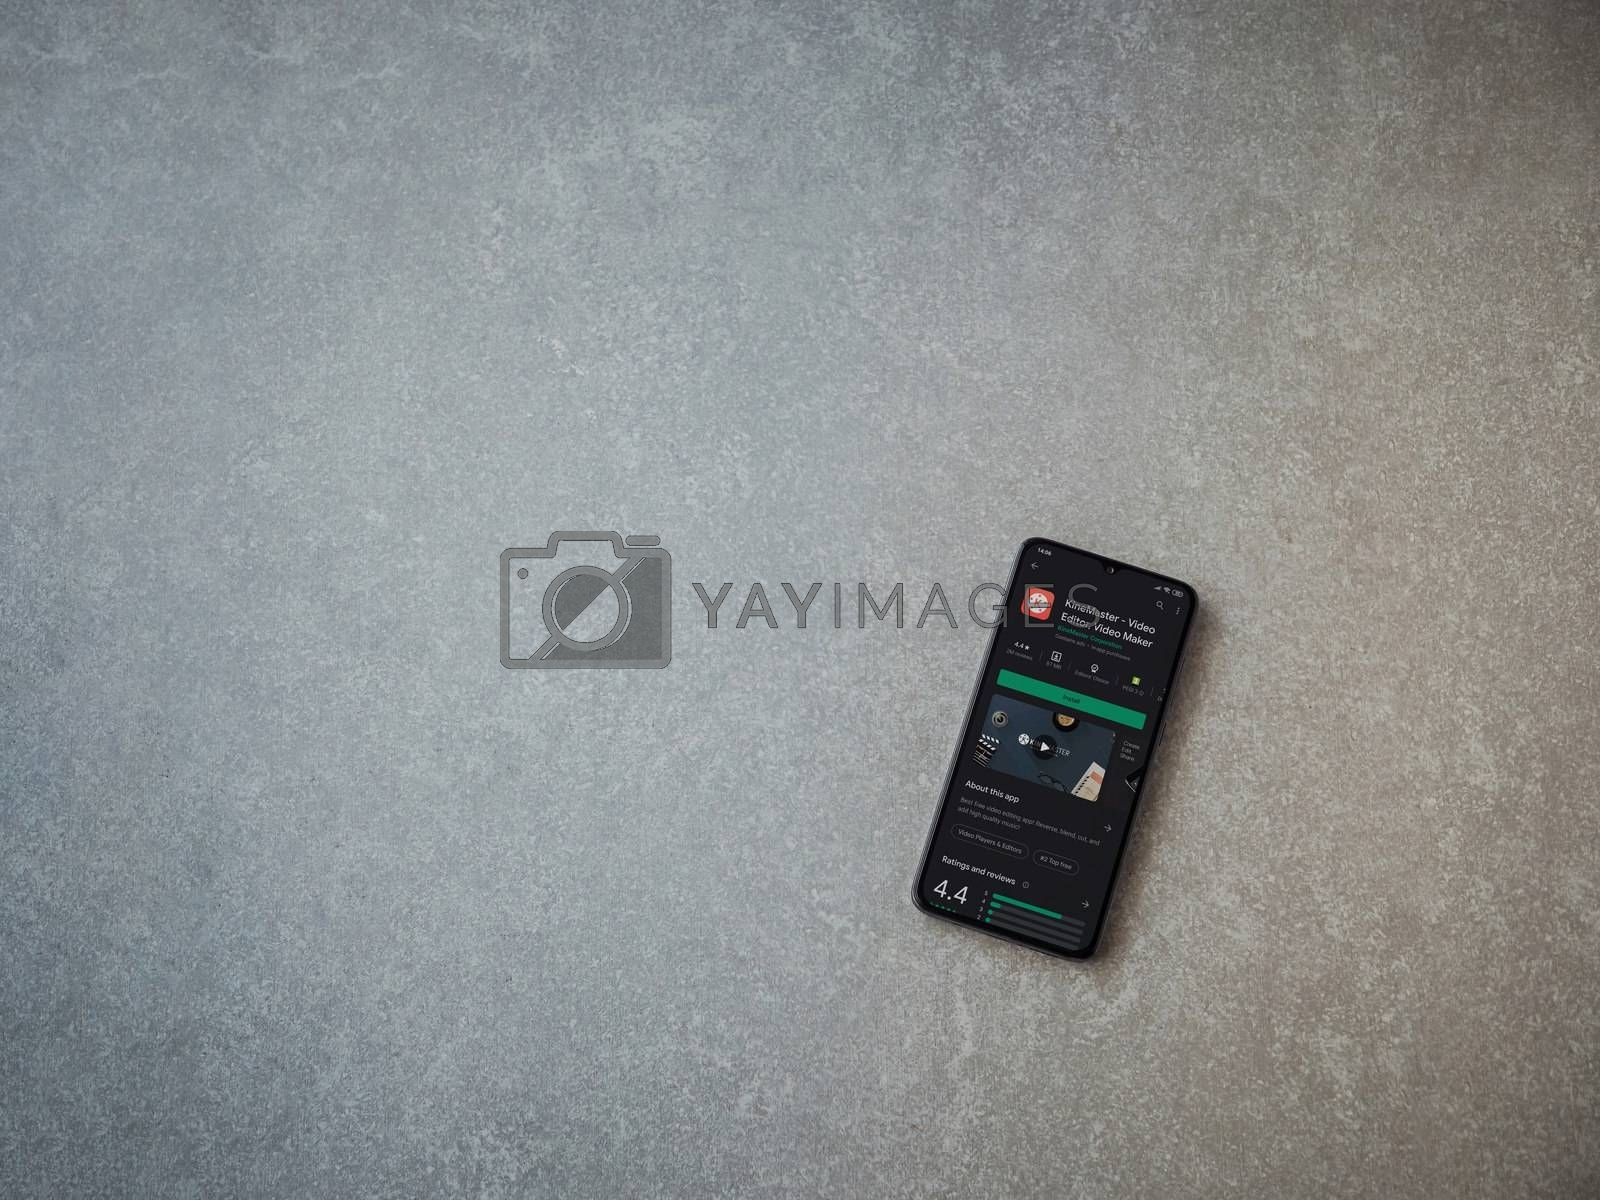 Lod, Israel - July 8, 2020: KineMaster - Video Editor and Movie Maker app play store page on the display of a black mobile smartphone on ceramic stone background. Top view flat lay with copy space.